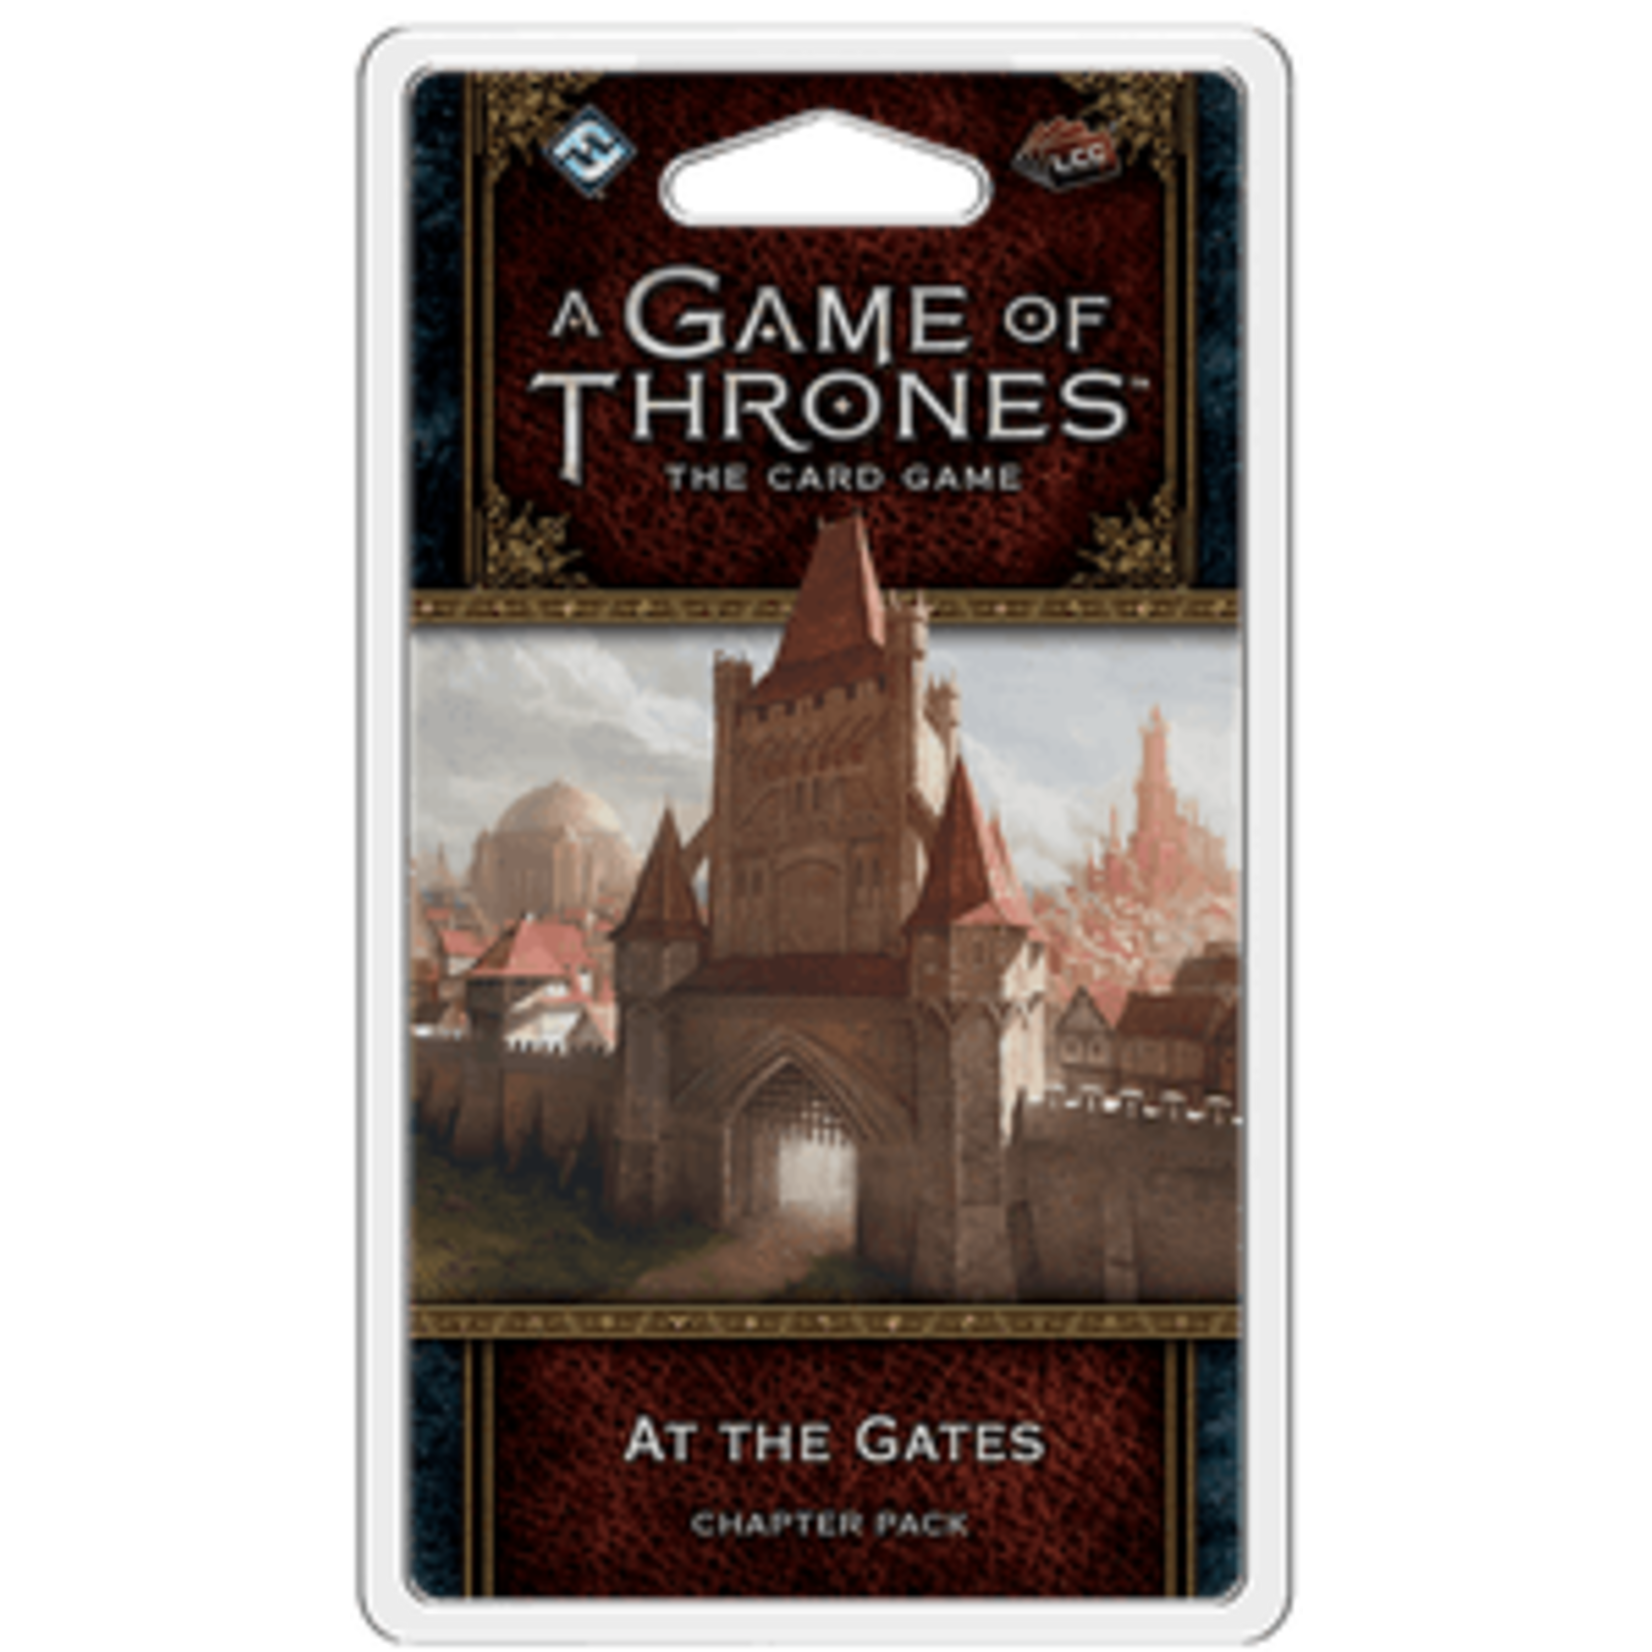 Game of Thrones LCG At The Gates Chapter Pack